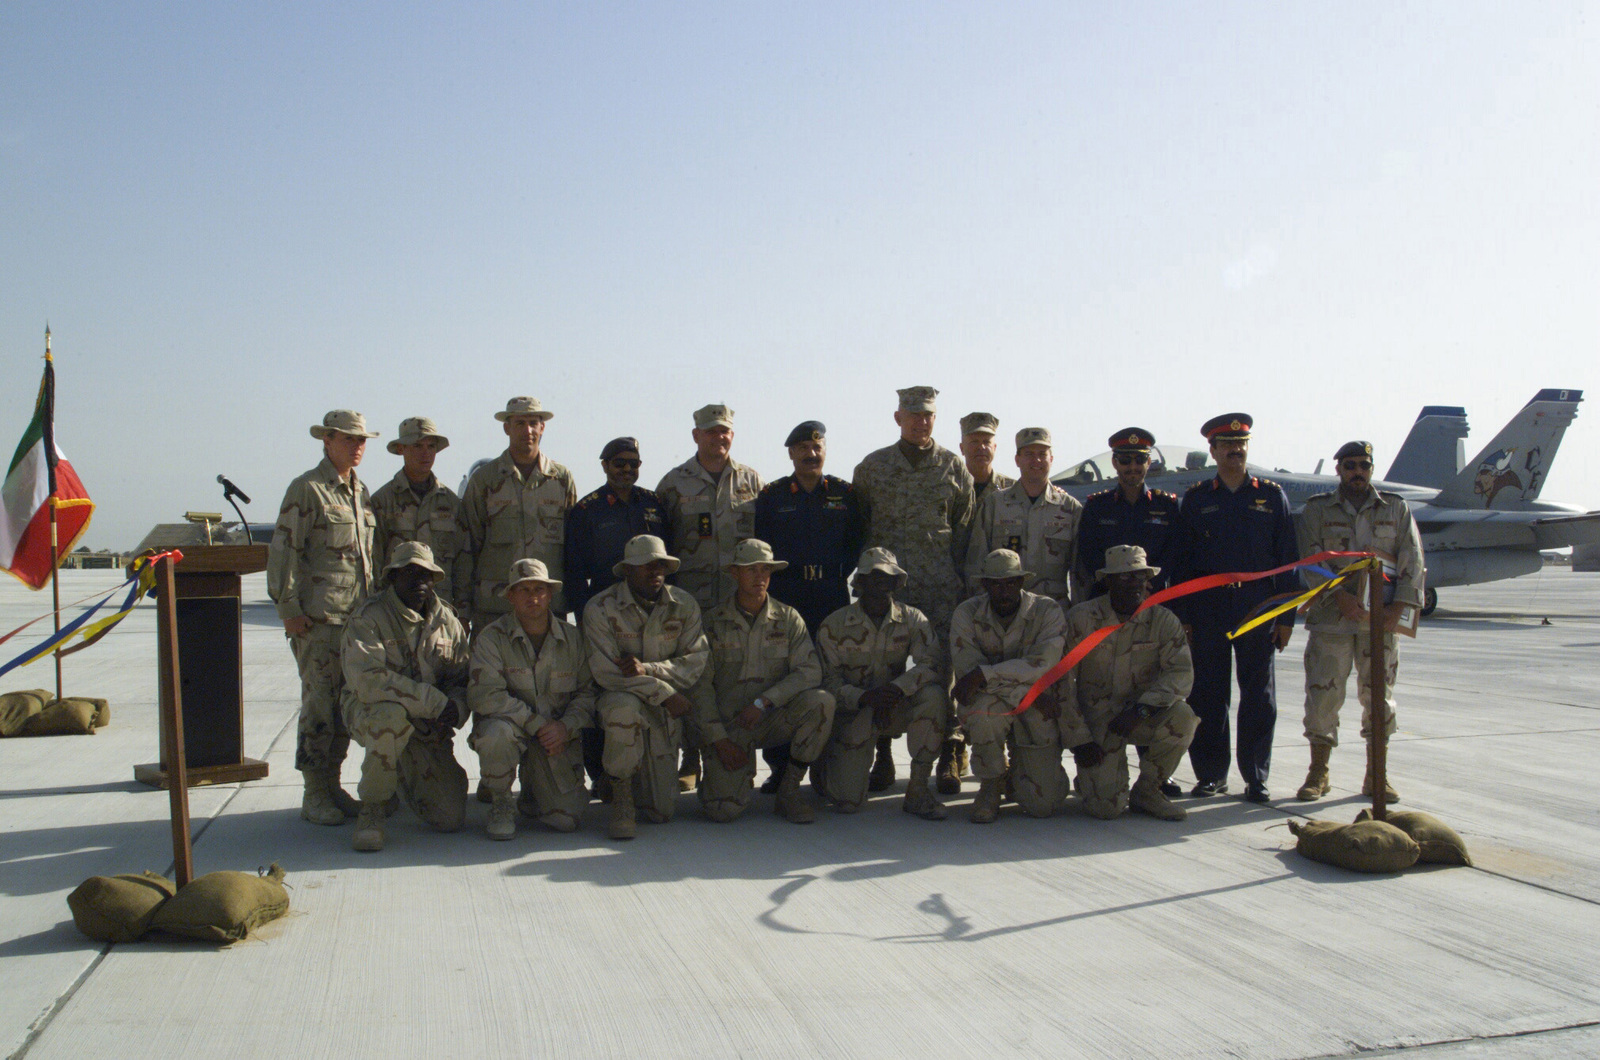 US Navy Sea Bees pose for a group photograph with US Military and State of Kuwait Officials following a ribbon cutting ceremony marking the opening of the new aircraft parking ramp at Ahmed Al Jaber Air Base, Kuwait, during Operation ENDURING FREEDOM. Included in the photo are US Navy (USN) Rear Admiral (RADM) Charles R. Kubic, Commander, First Naval Construction Division, and Commander, Naval Construction Forces Command (back row, fifth from the left) and State of Kuwait Major General (MGEN) Yousaf, pictured to RADM Kubics right